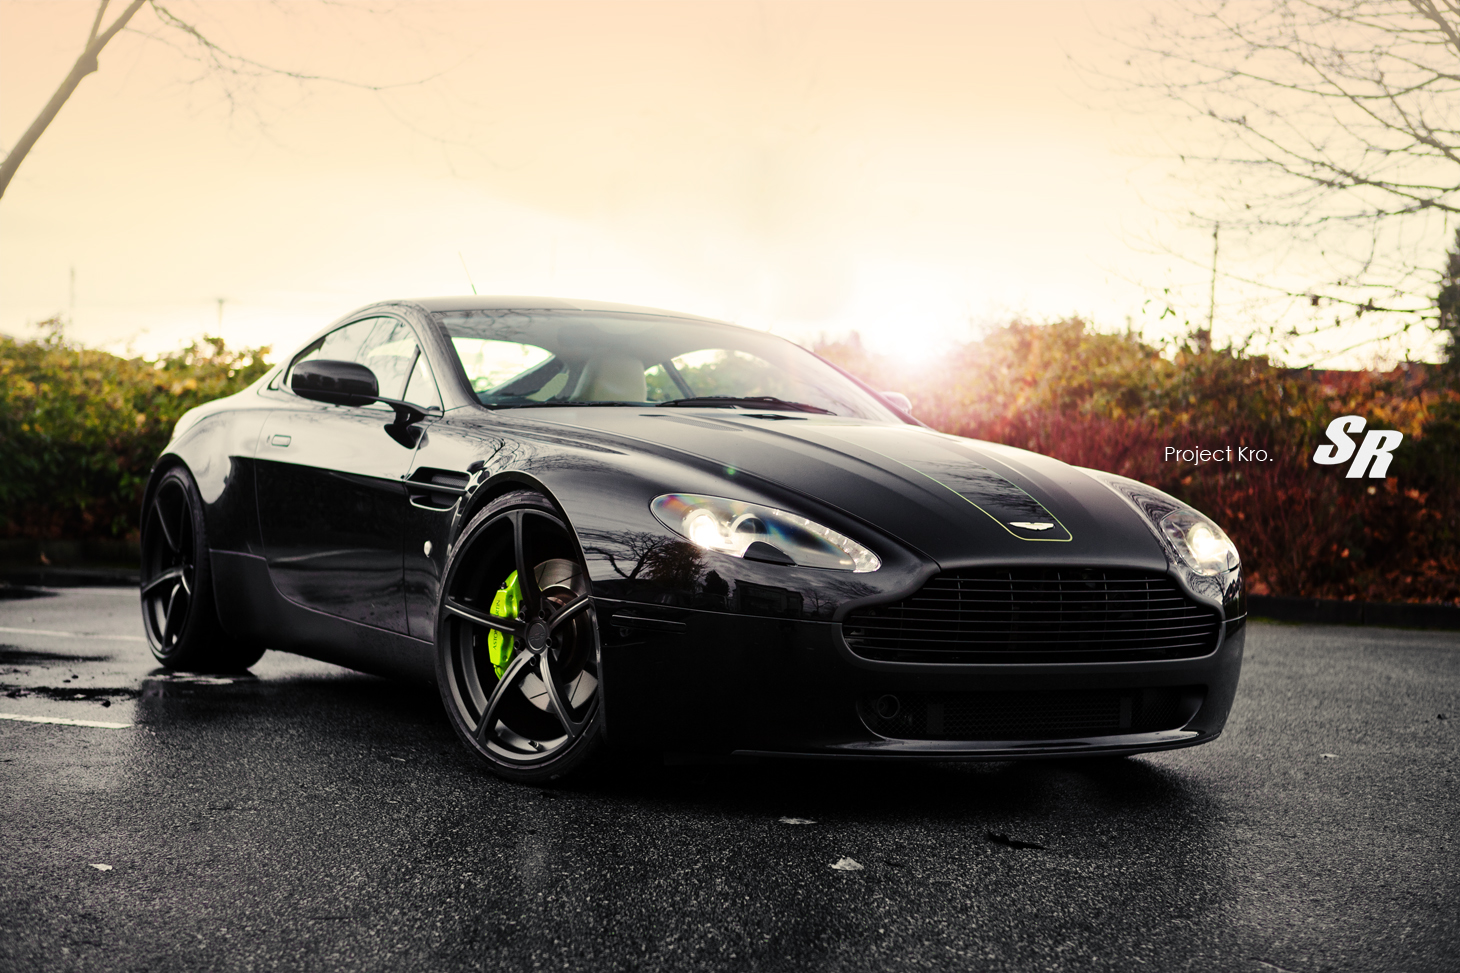 2013 Aston Martin Vantage Project Kro By Sr Auto Group Top Speed